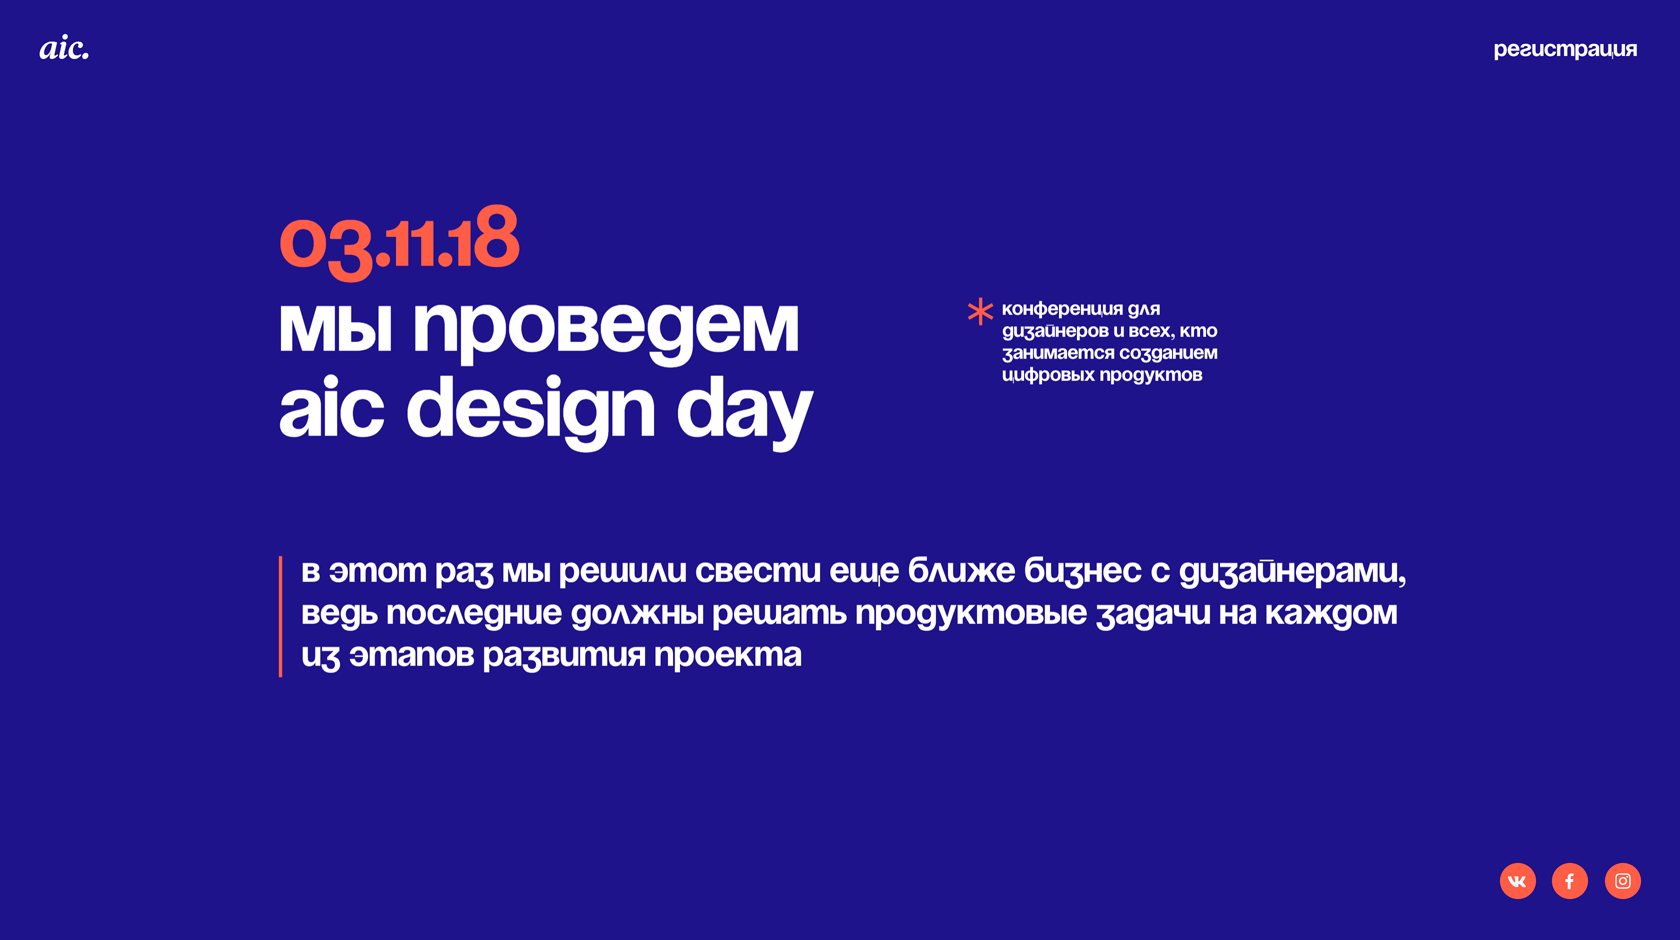 Сайт мероприятия AIC Design Day